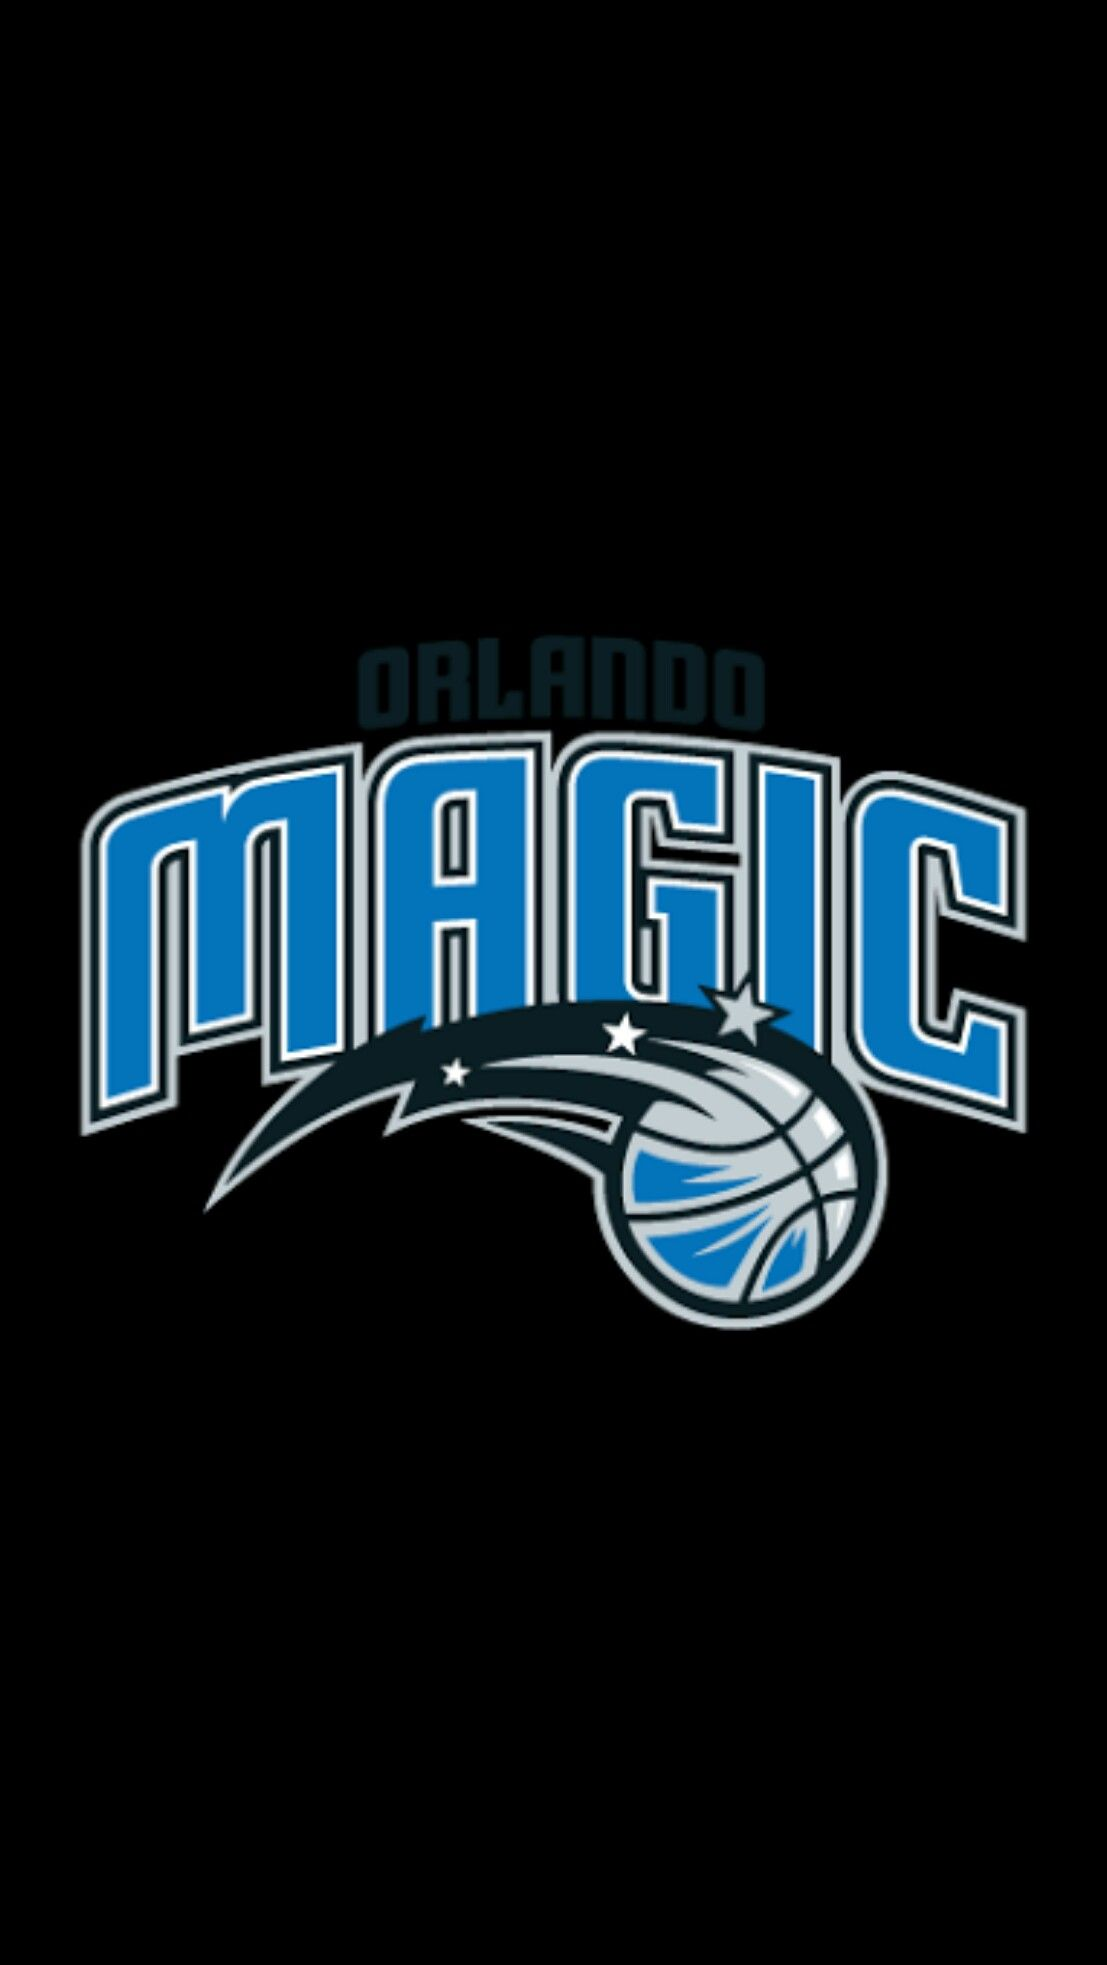 Nba Wallpaper Iphone Android Nba Wallpapers Orlando